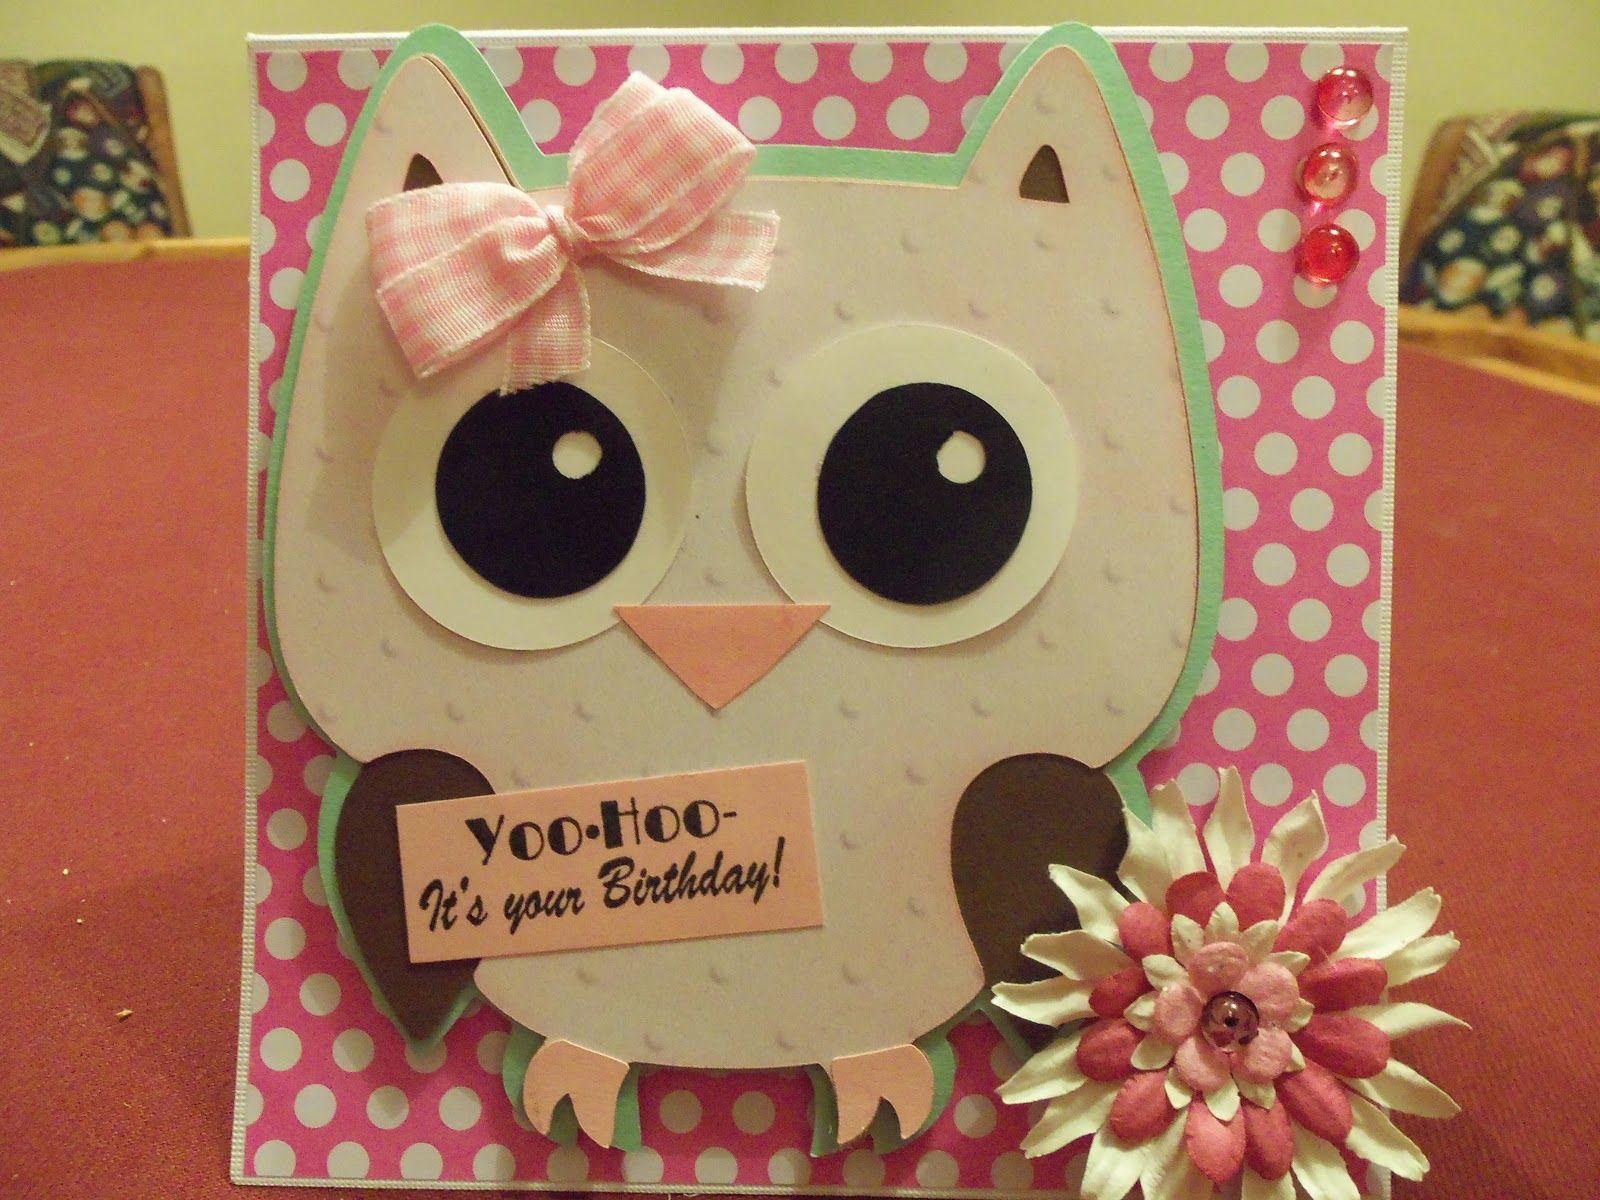 Card Making Ideas With Cricut Part - 24: Cricut Cards Ideas | DoubleClick - AKA Abusybee: Yoo-Hoo Itu0027s Your Birthday!